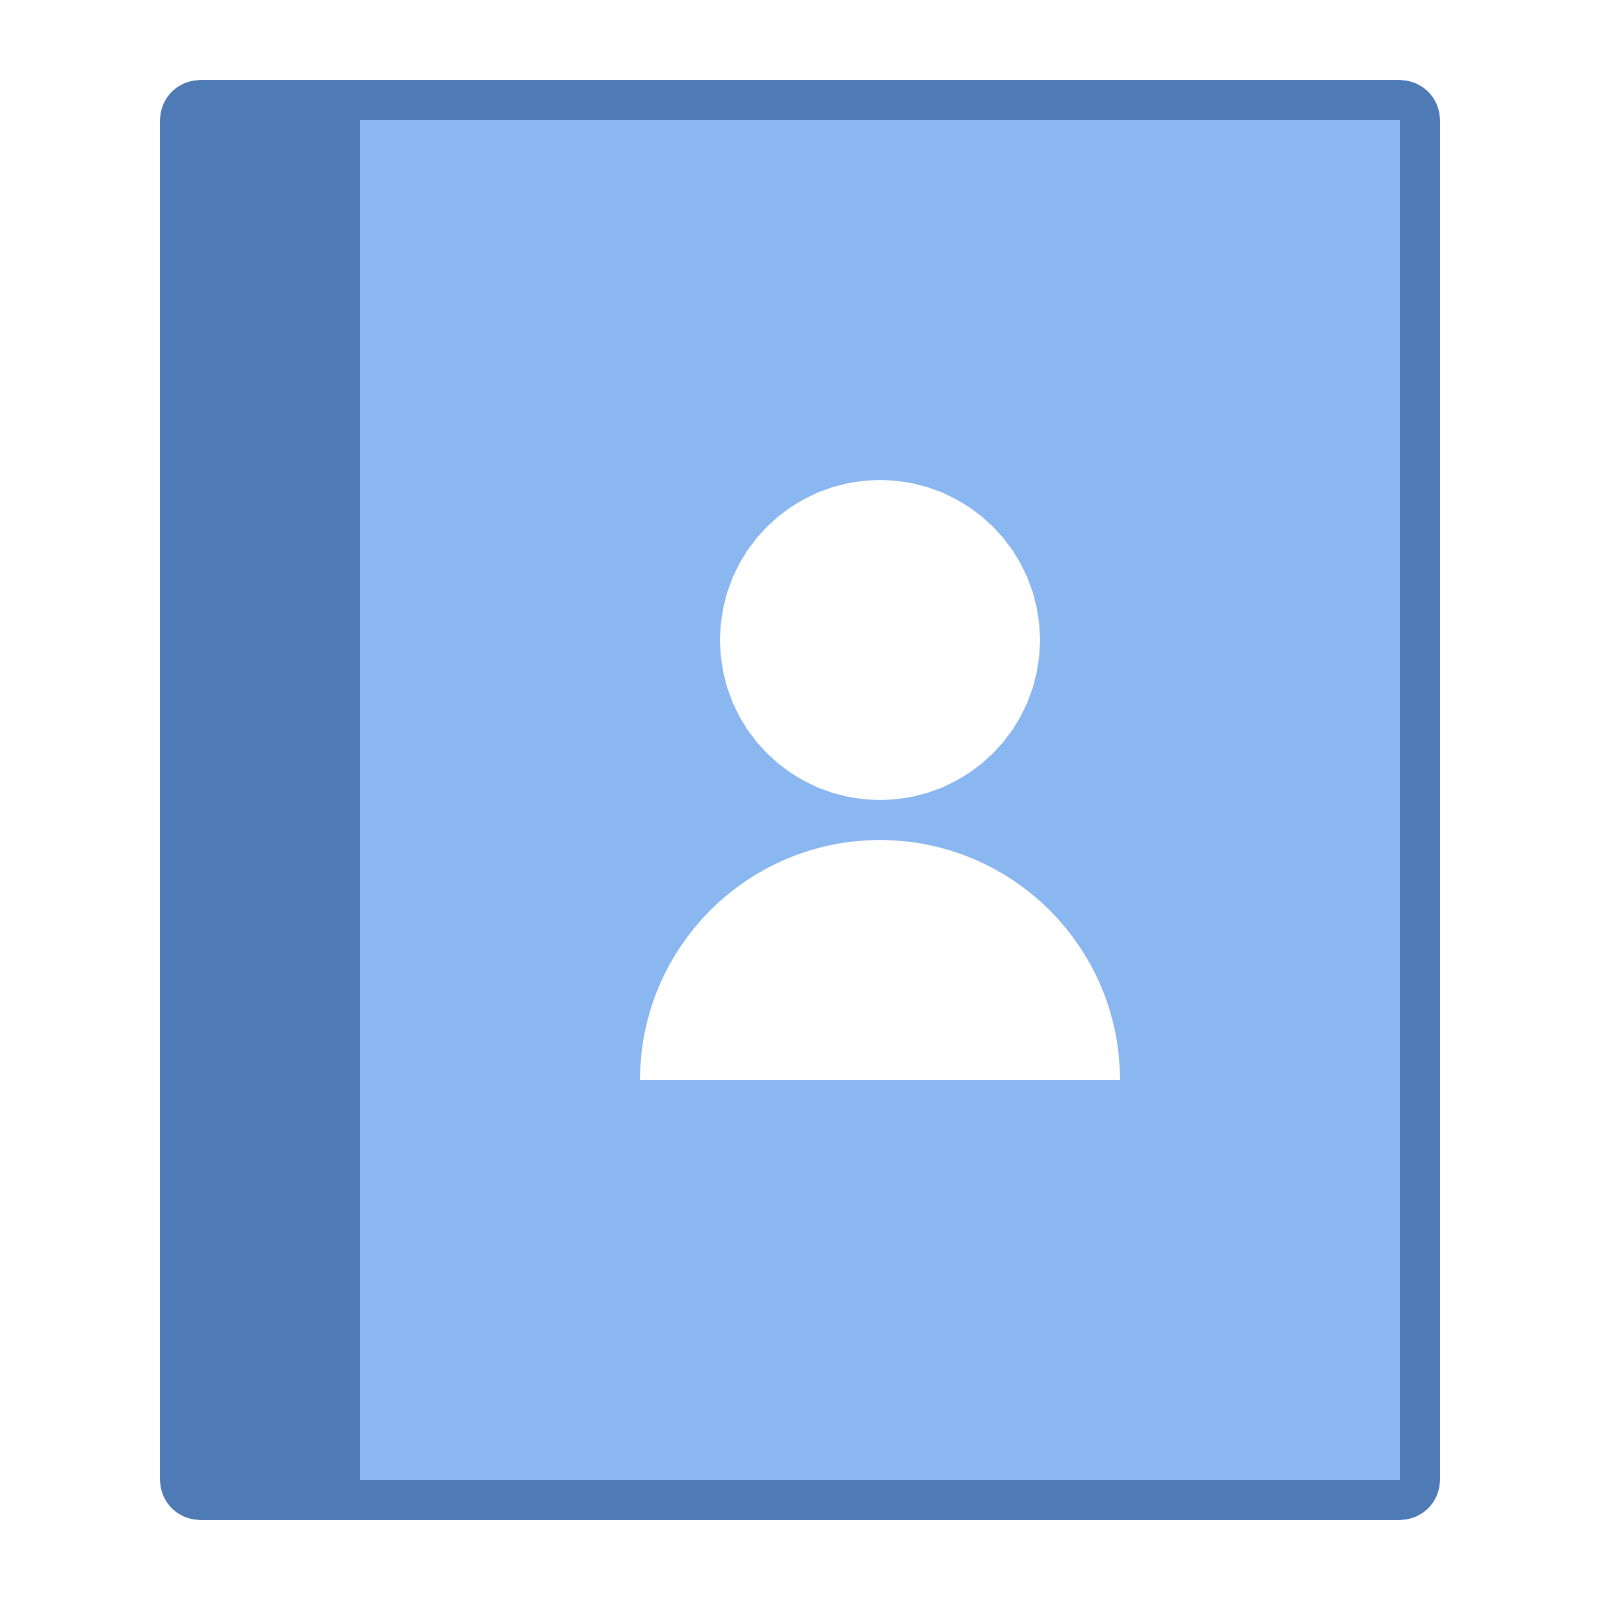 Needless clipart icon Contacts Icon Contacts Free Download